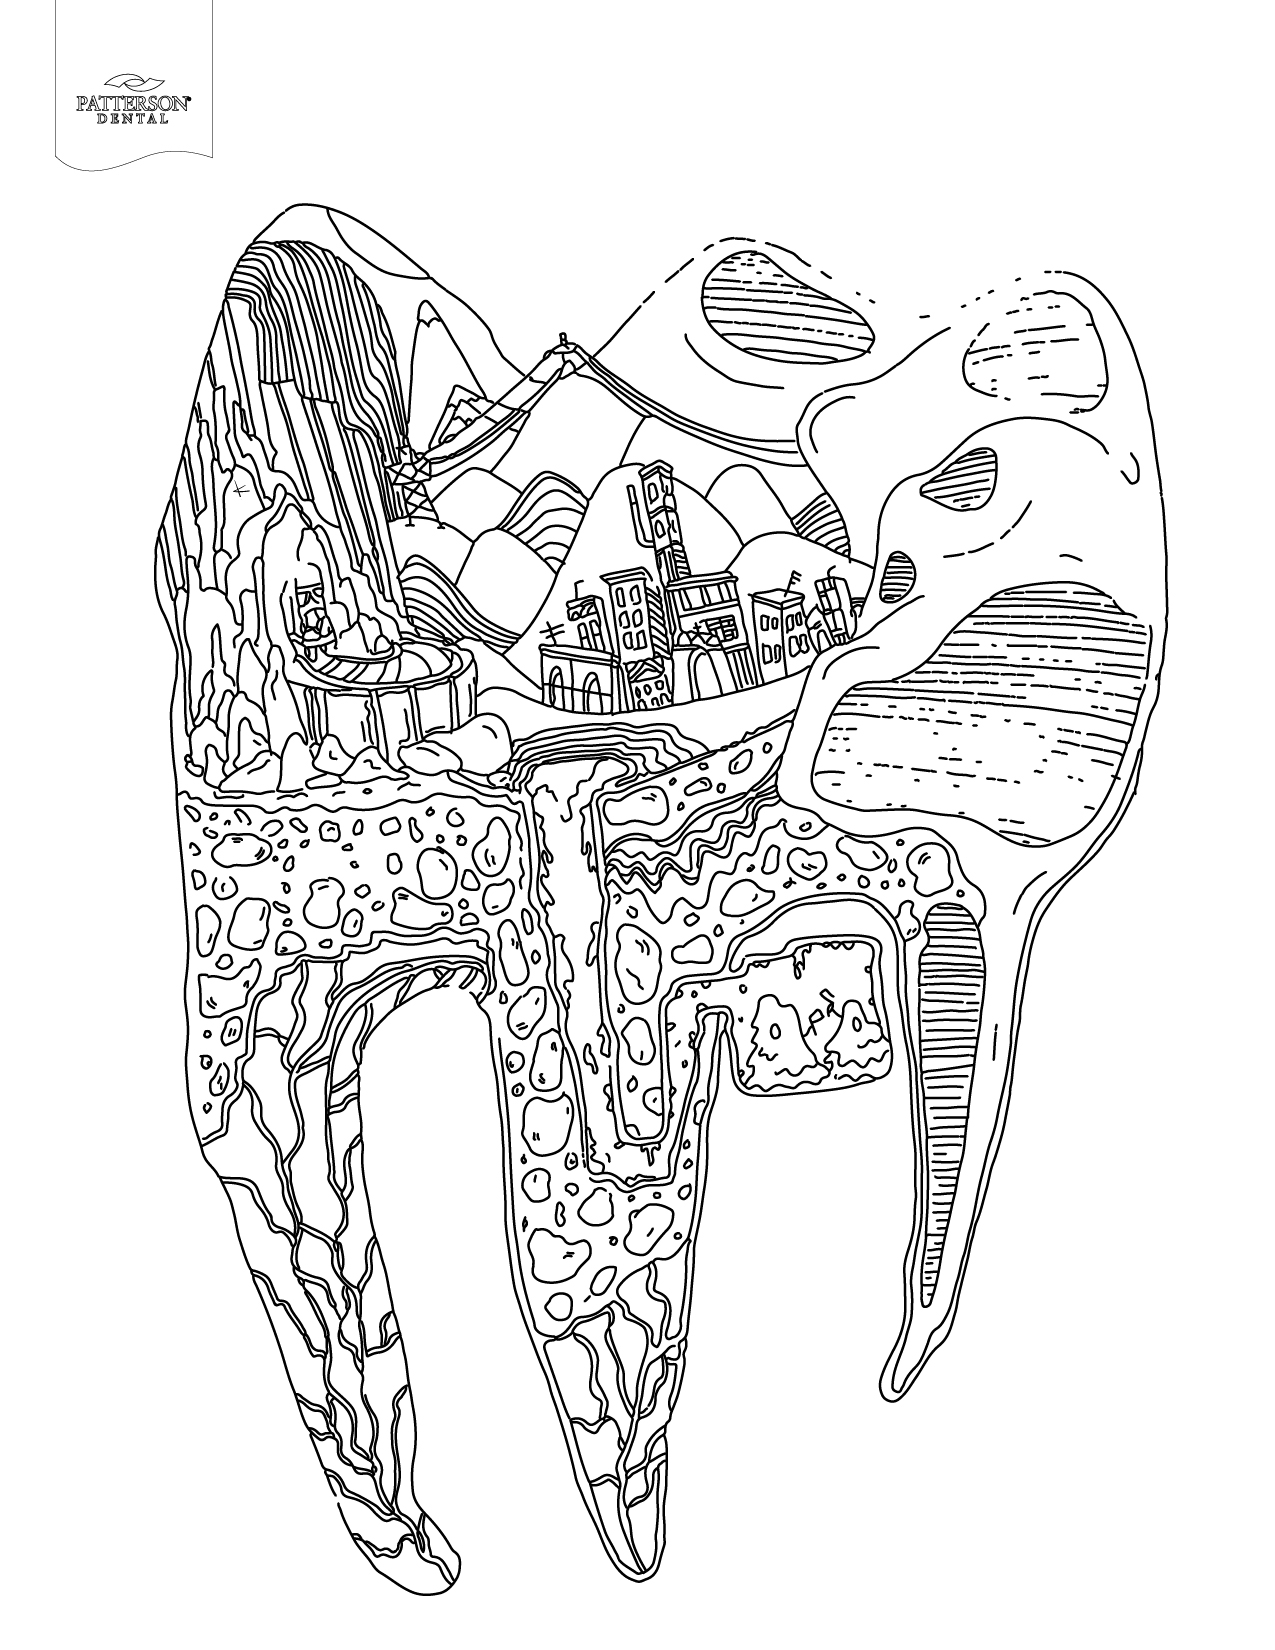 10 Toothy Adult Coloring Pages [Printable] f The Cusp